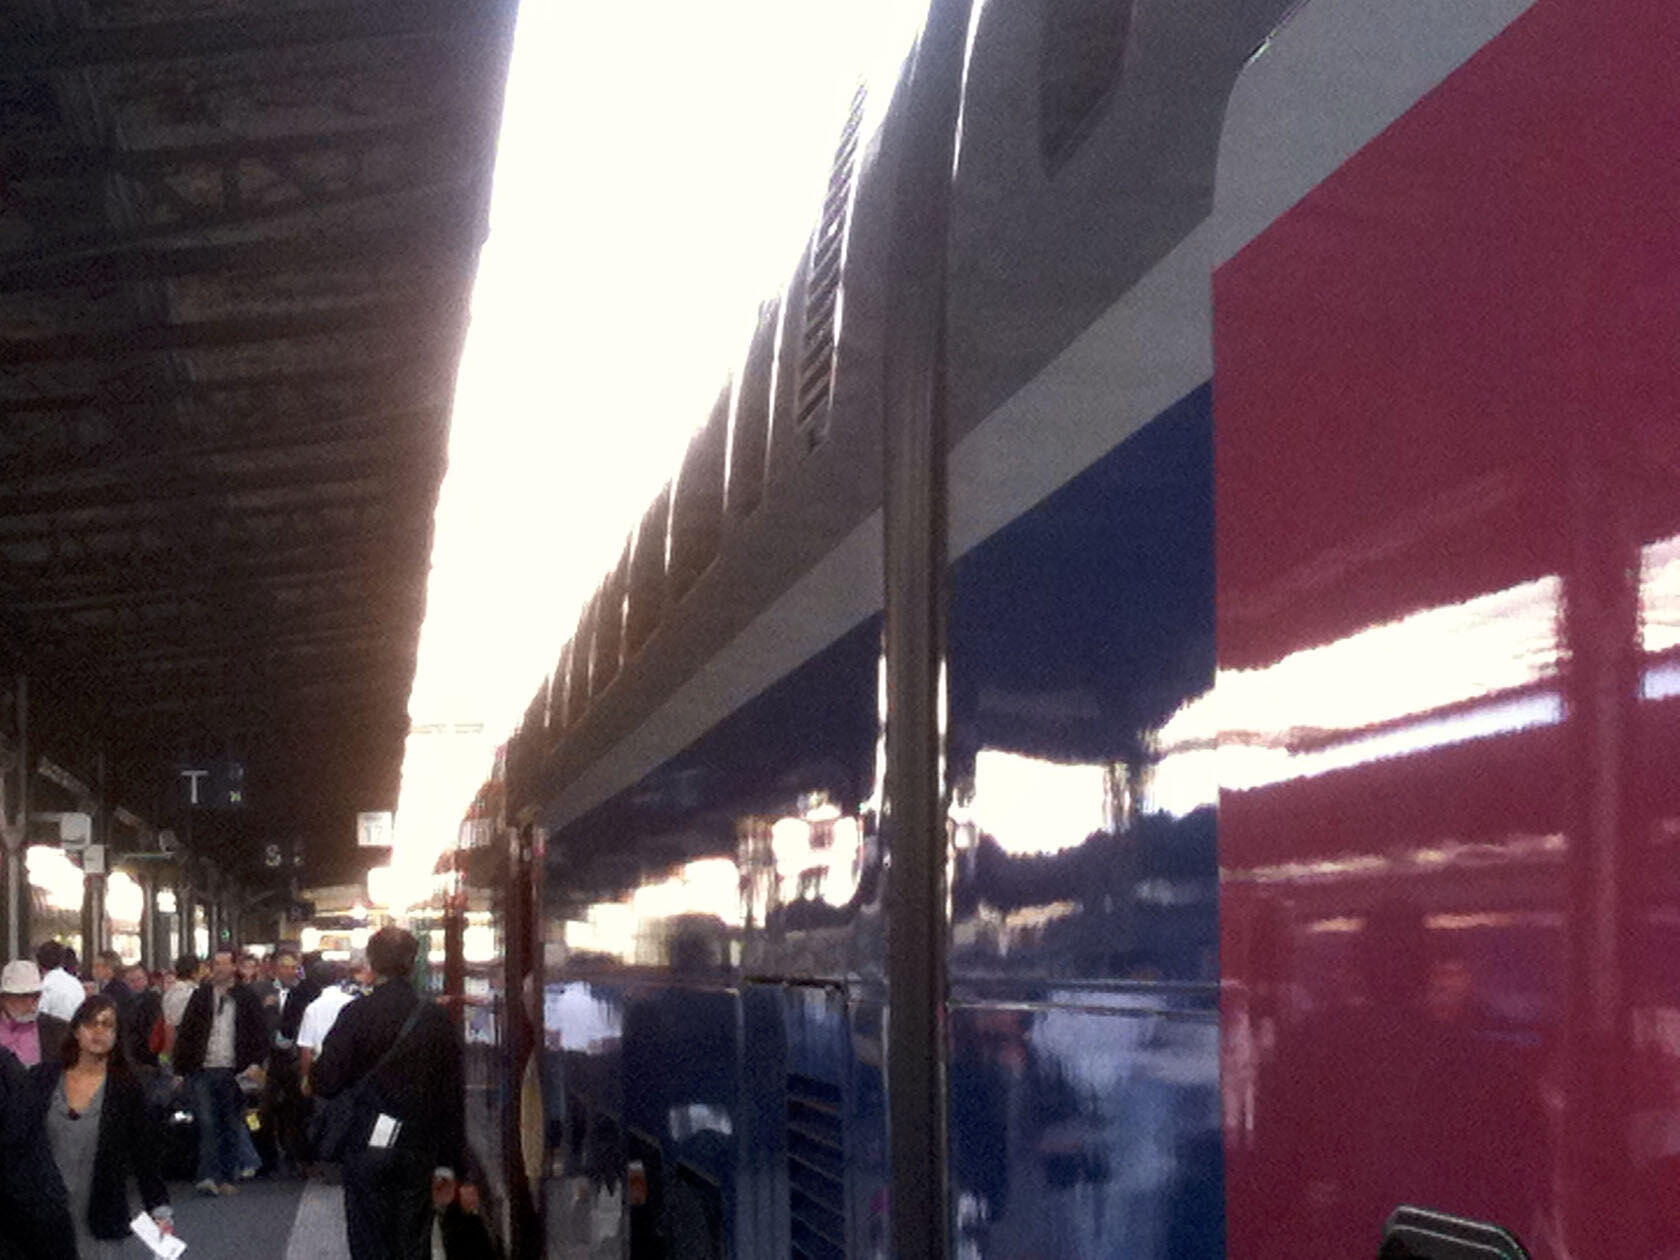 Train Travel Tgv Avignon To Nice On The Fast One Perfectly Provence